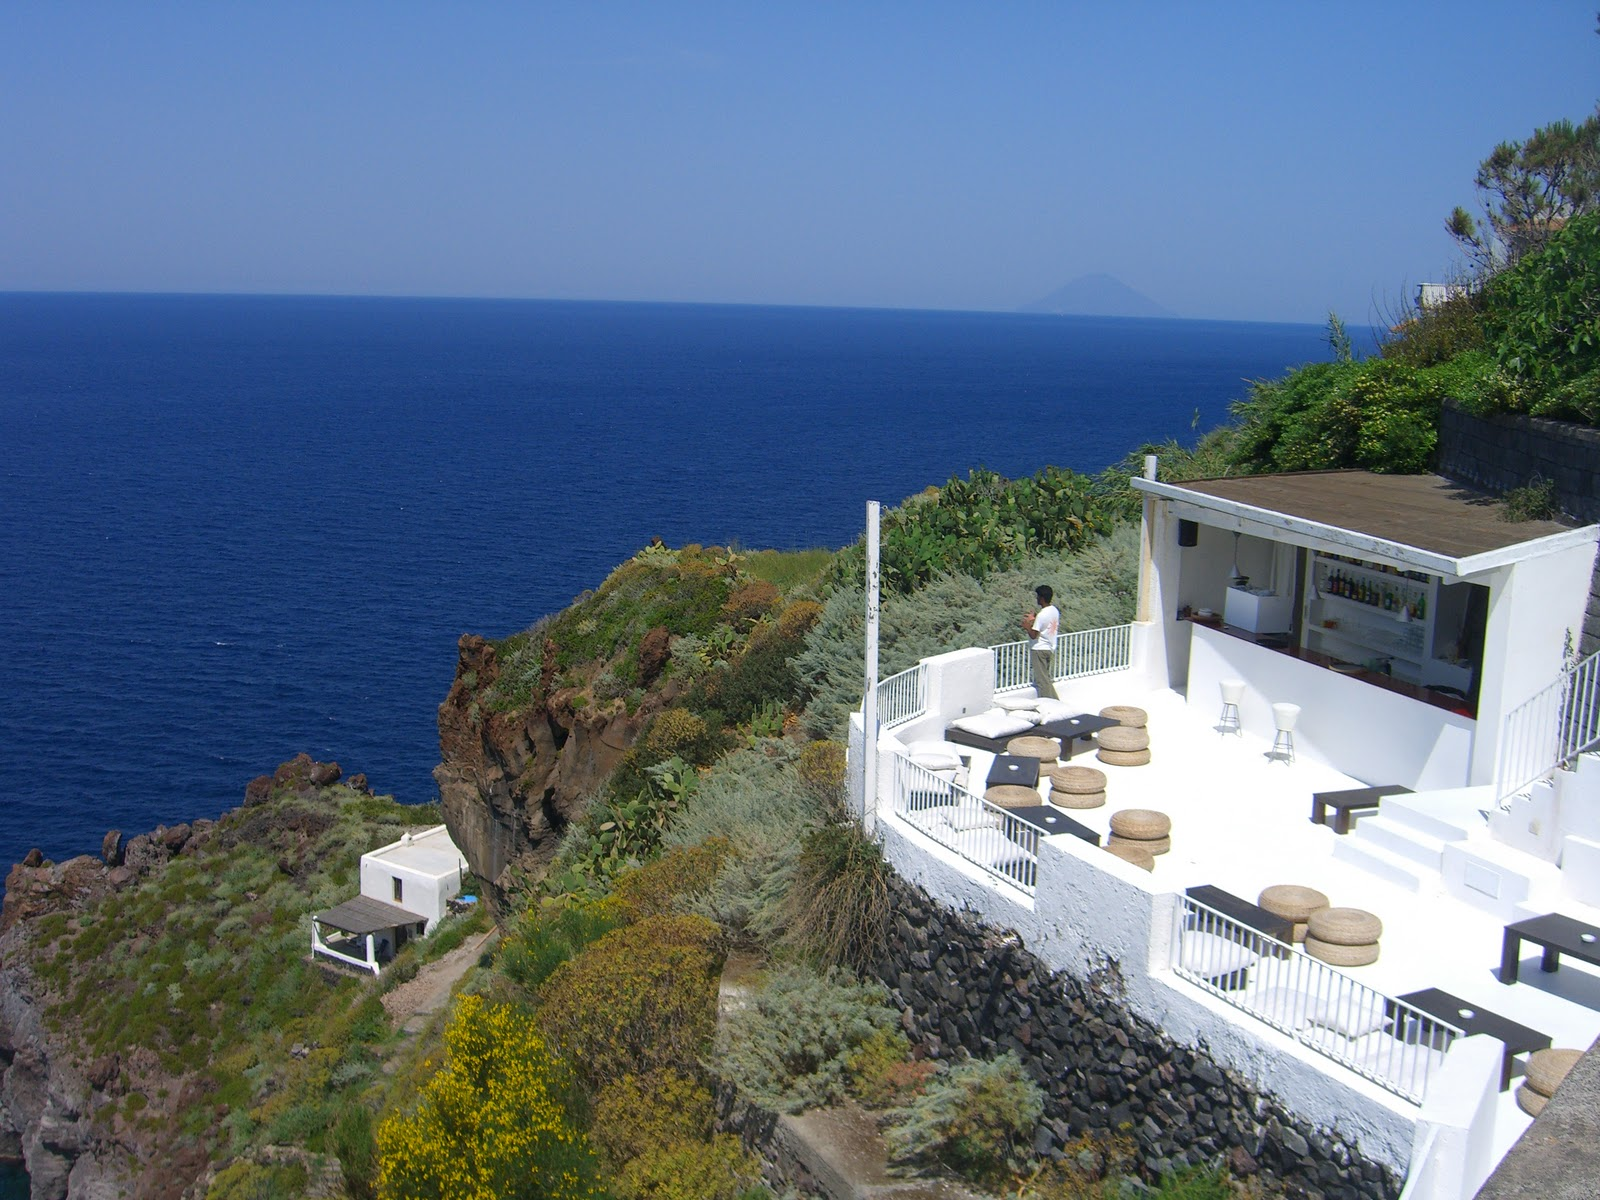 A dream on earth called isola di salina eolian islands for Salina sicily things to do